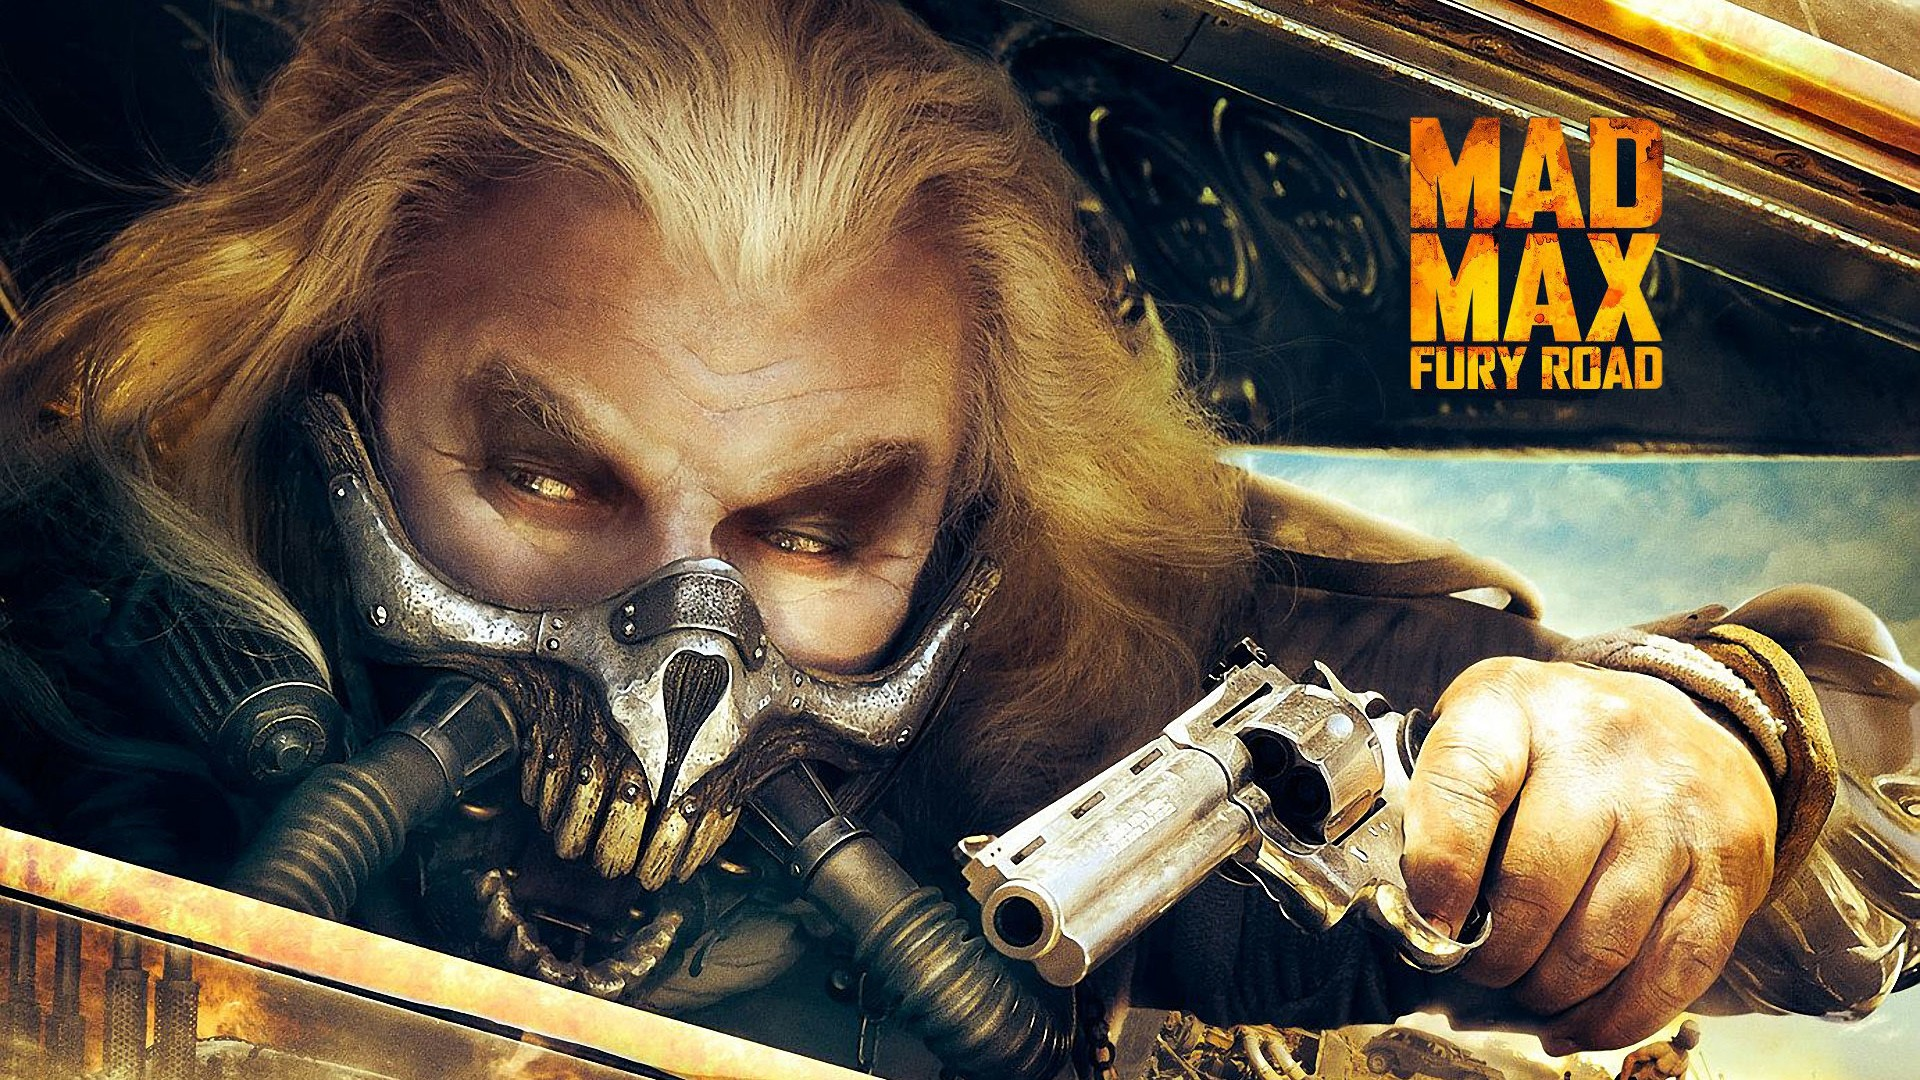 Iphone 4 Wallpapers Hd 3d Max Max Fury Road Immortan Joe Wallpapers Hd Wallpapers